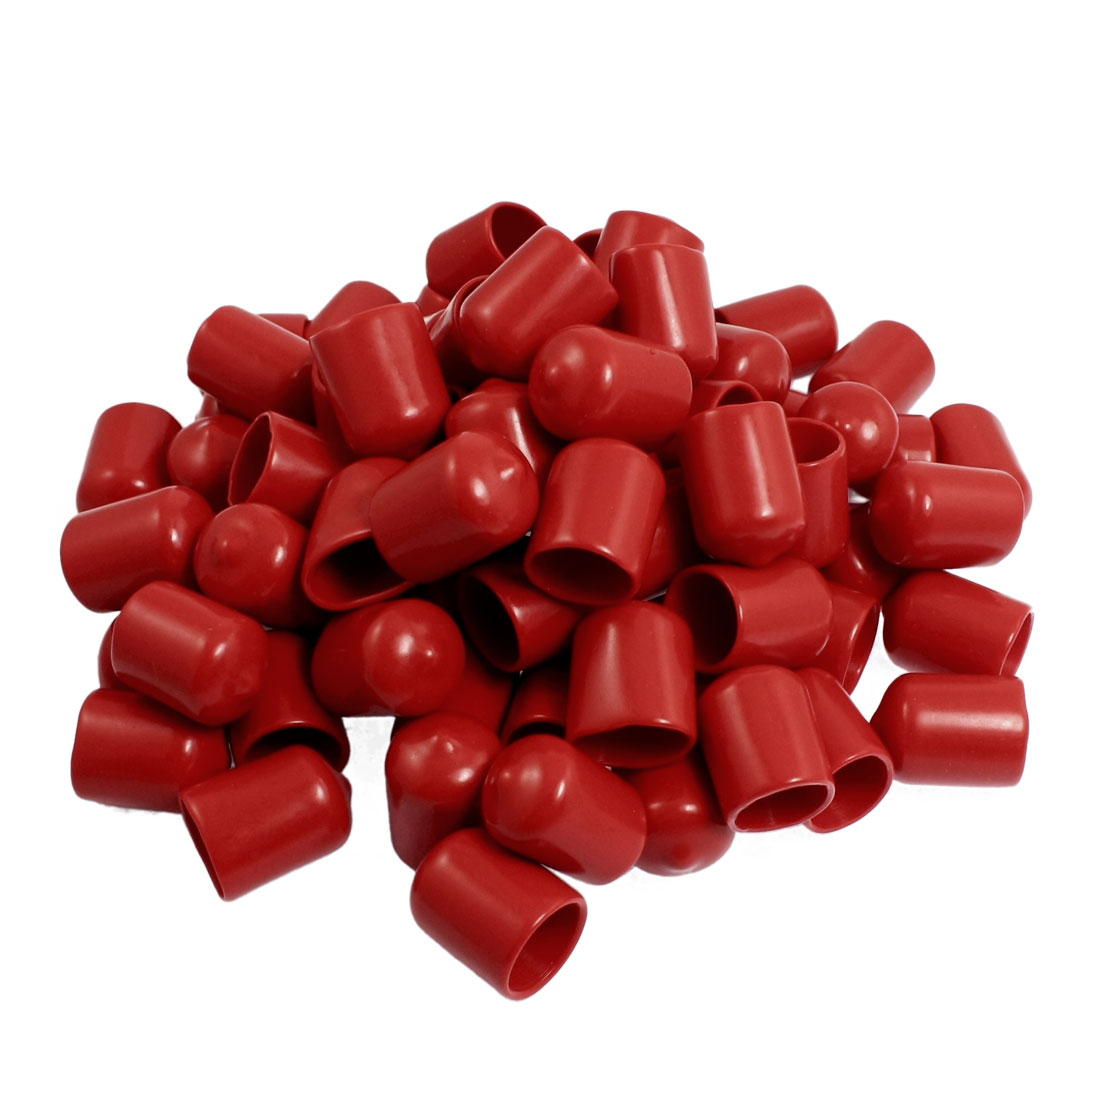 80 Pcs 25mm High 16mm Inner Dia Round Tip Red PVC Insulated End Caps